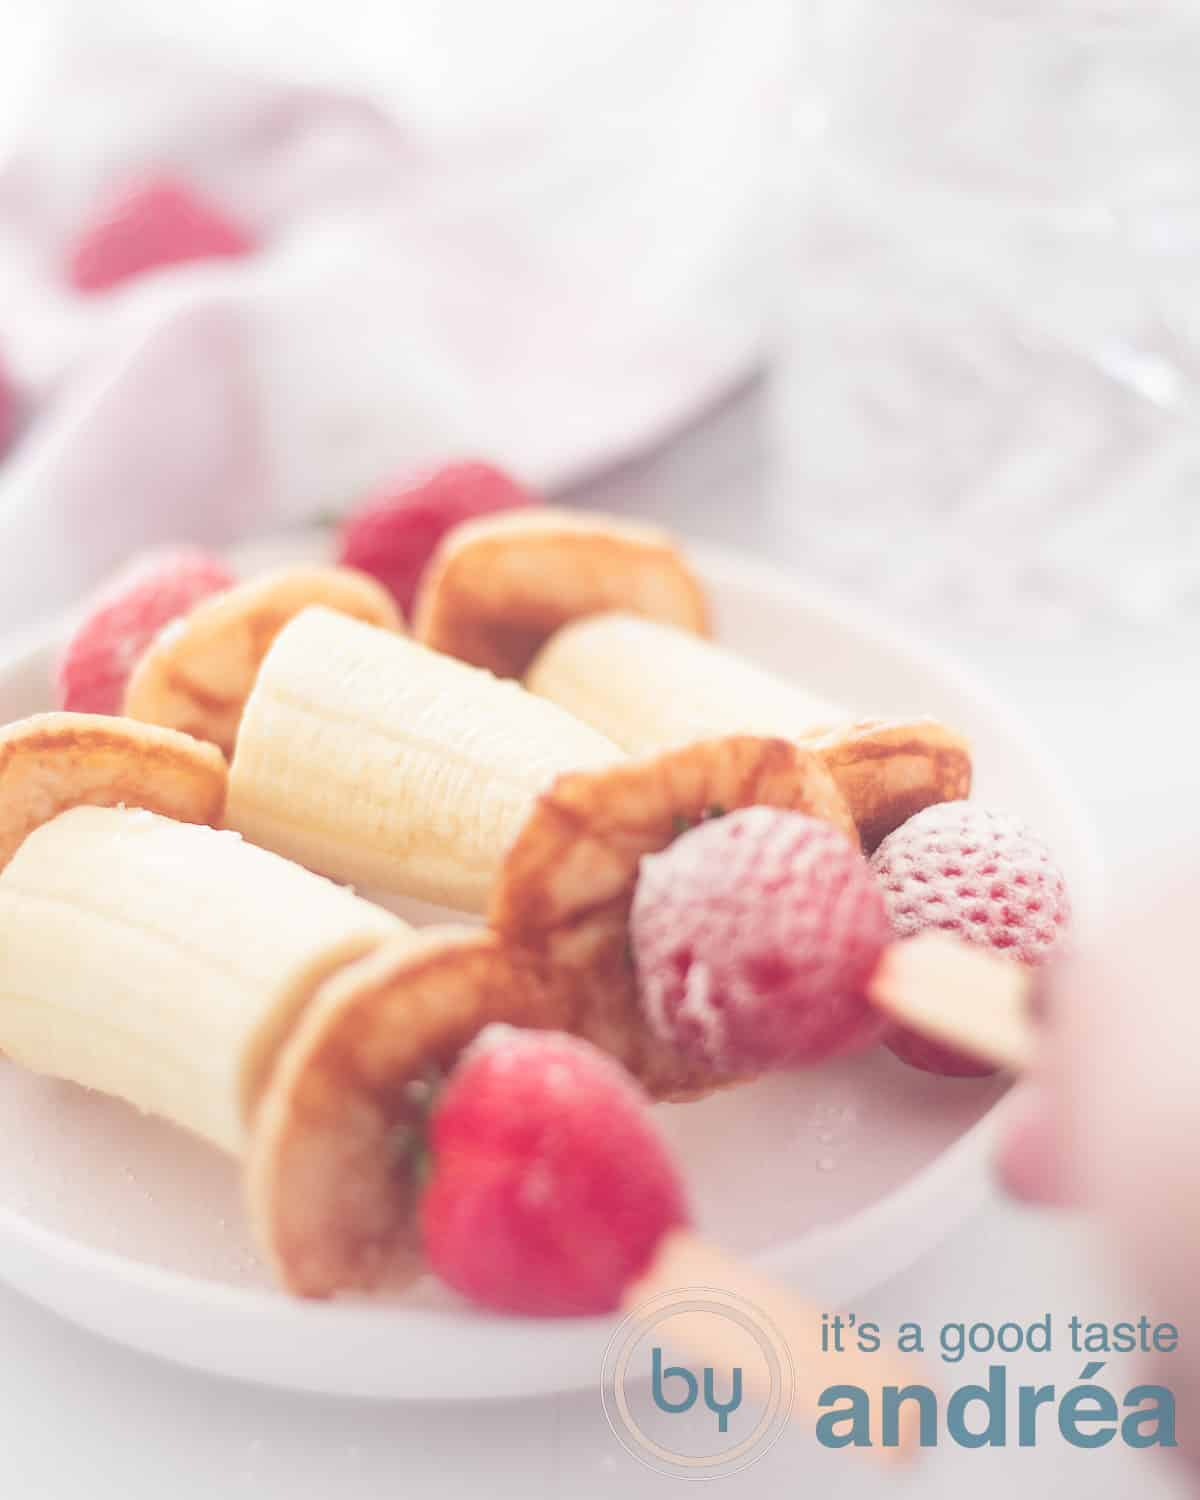 3 healthy treats with banana strawberries and pancakes on a stick on a plate